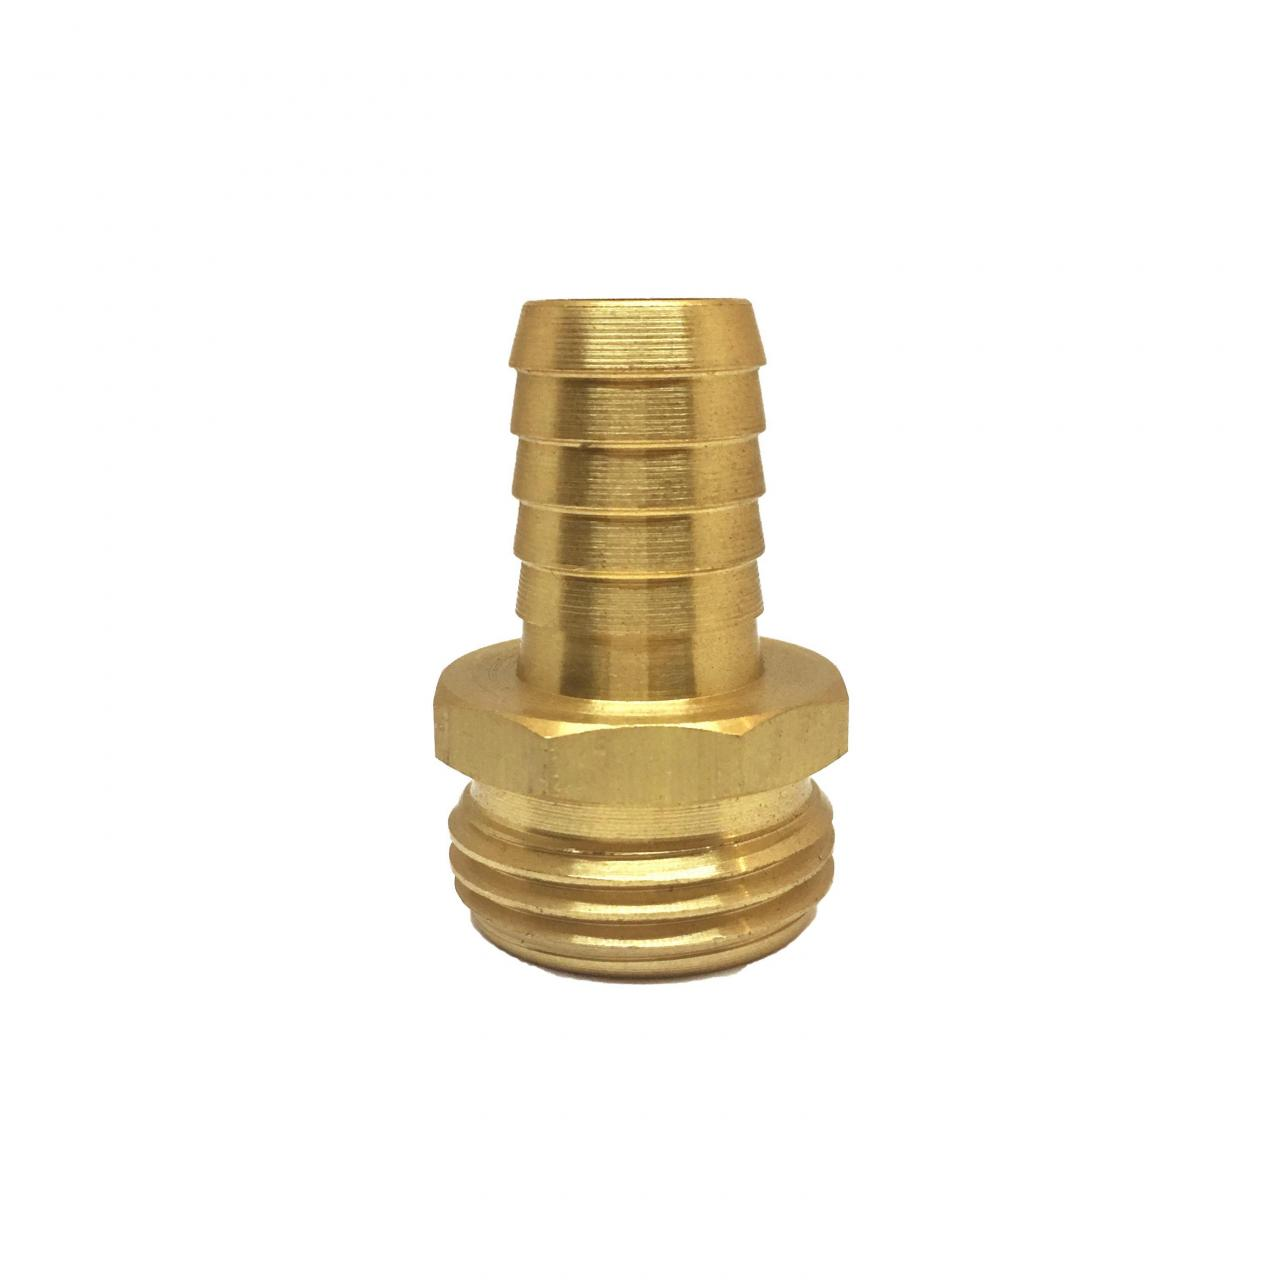 "Buy cheap 5/8"" Brass Hose Barb with 3/4"